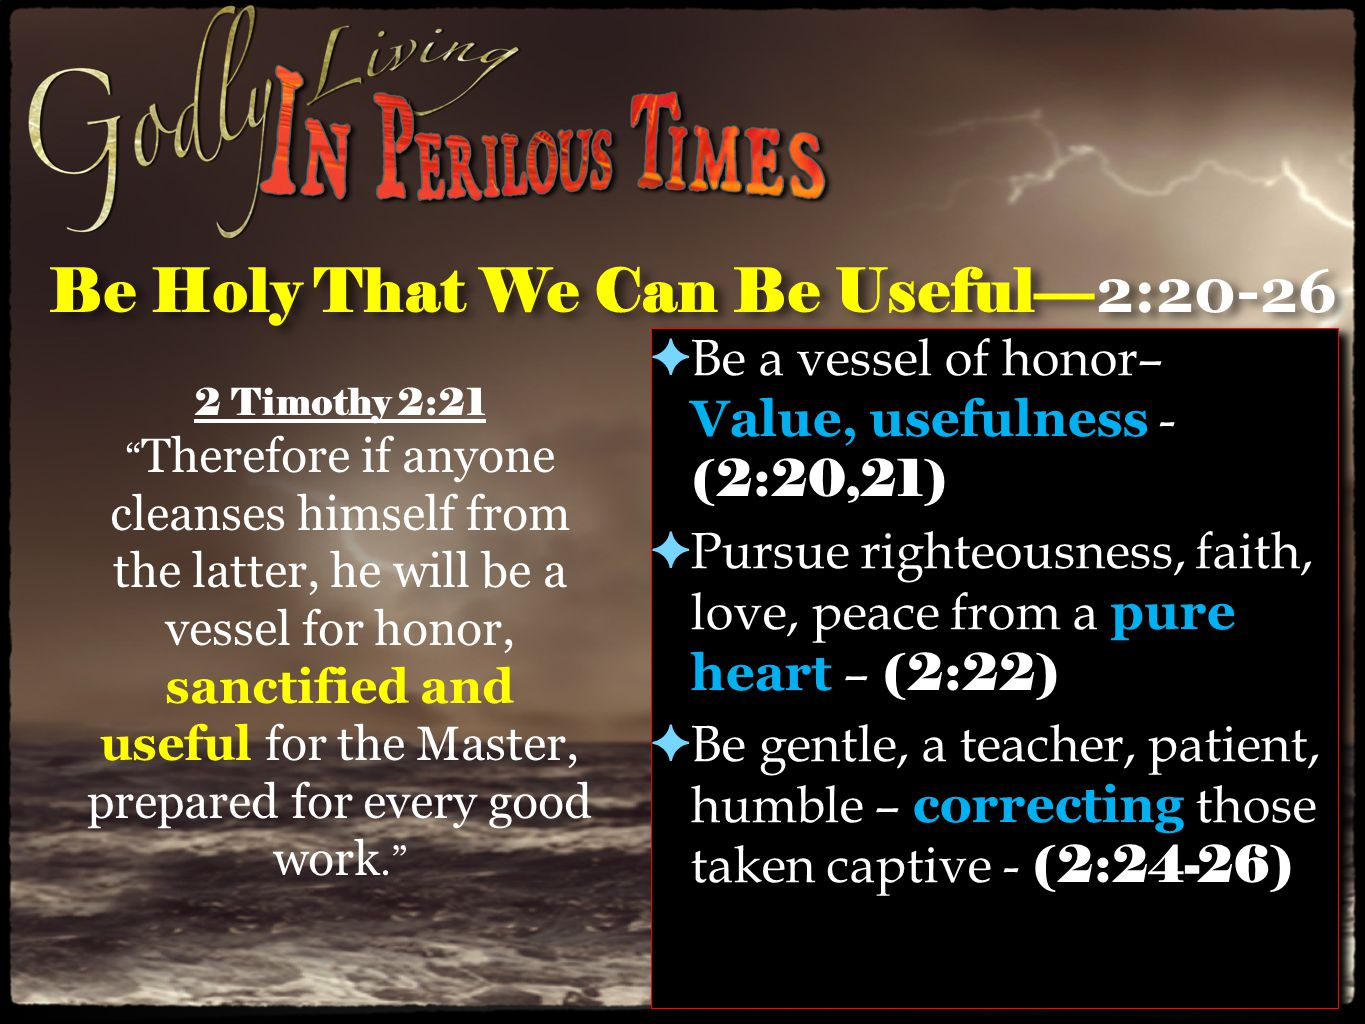 Be Holy That We Can Be Useful— 2:20-26 ✦ Be a vessel of honor– Value, usefulness - (2:20,21) ✦ Pursue righteousness, faith, love, peace from a pure heart – (2:22) ✦ Be gentle, a teacher, patient, humble – correcting those taken captive - (2:24-26) ✦ Be a vessel of honor– Value, usefulness - (2:20,21) ✦ Pursue righteousness, faith, love, peace from a pure heart – (2:22) ✦ Be gentle, a teacher, patient, humble – correcting those taken captive - (2:24-26) 2 Timothy 2:21 Therefore if anyone cleanses himself from the latter, he will be a vessel for honor, sanctified and useful for the Master, prepared for every good work.